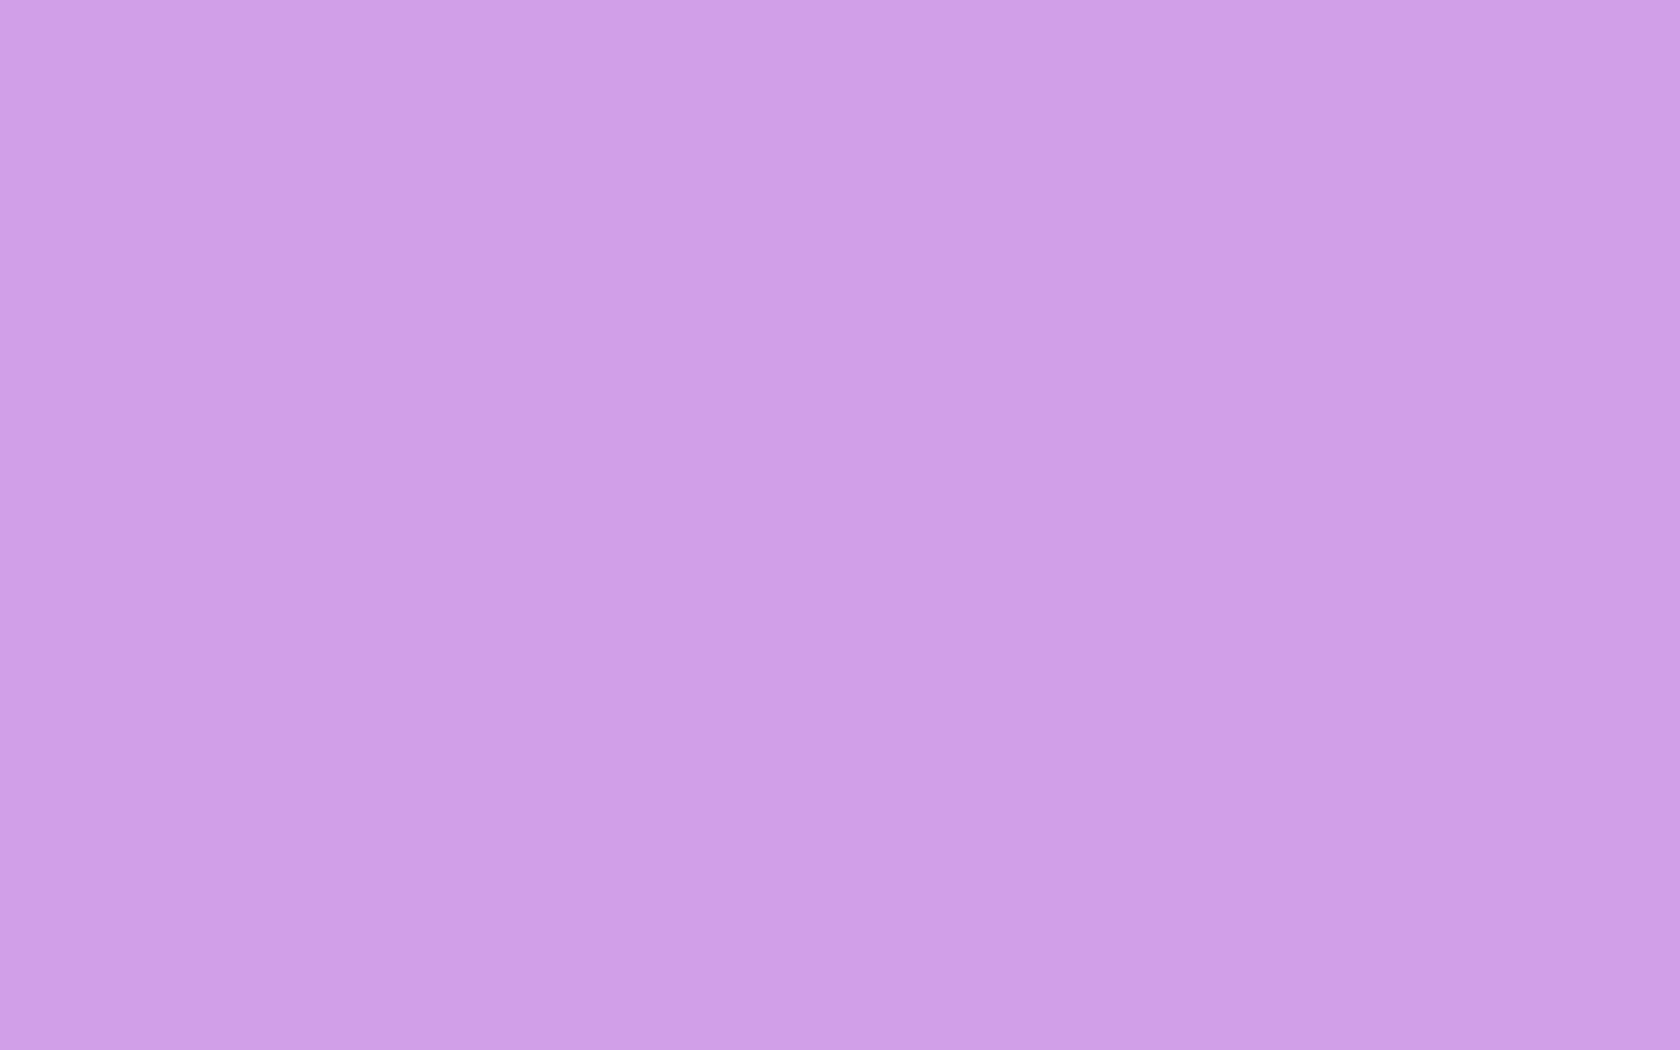 1680x1050 Bright Ube Solid Color Background